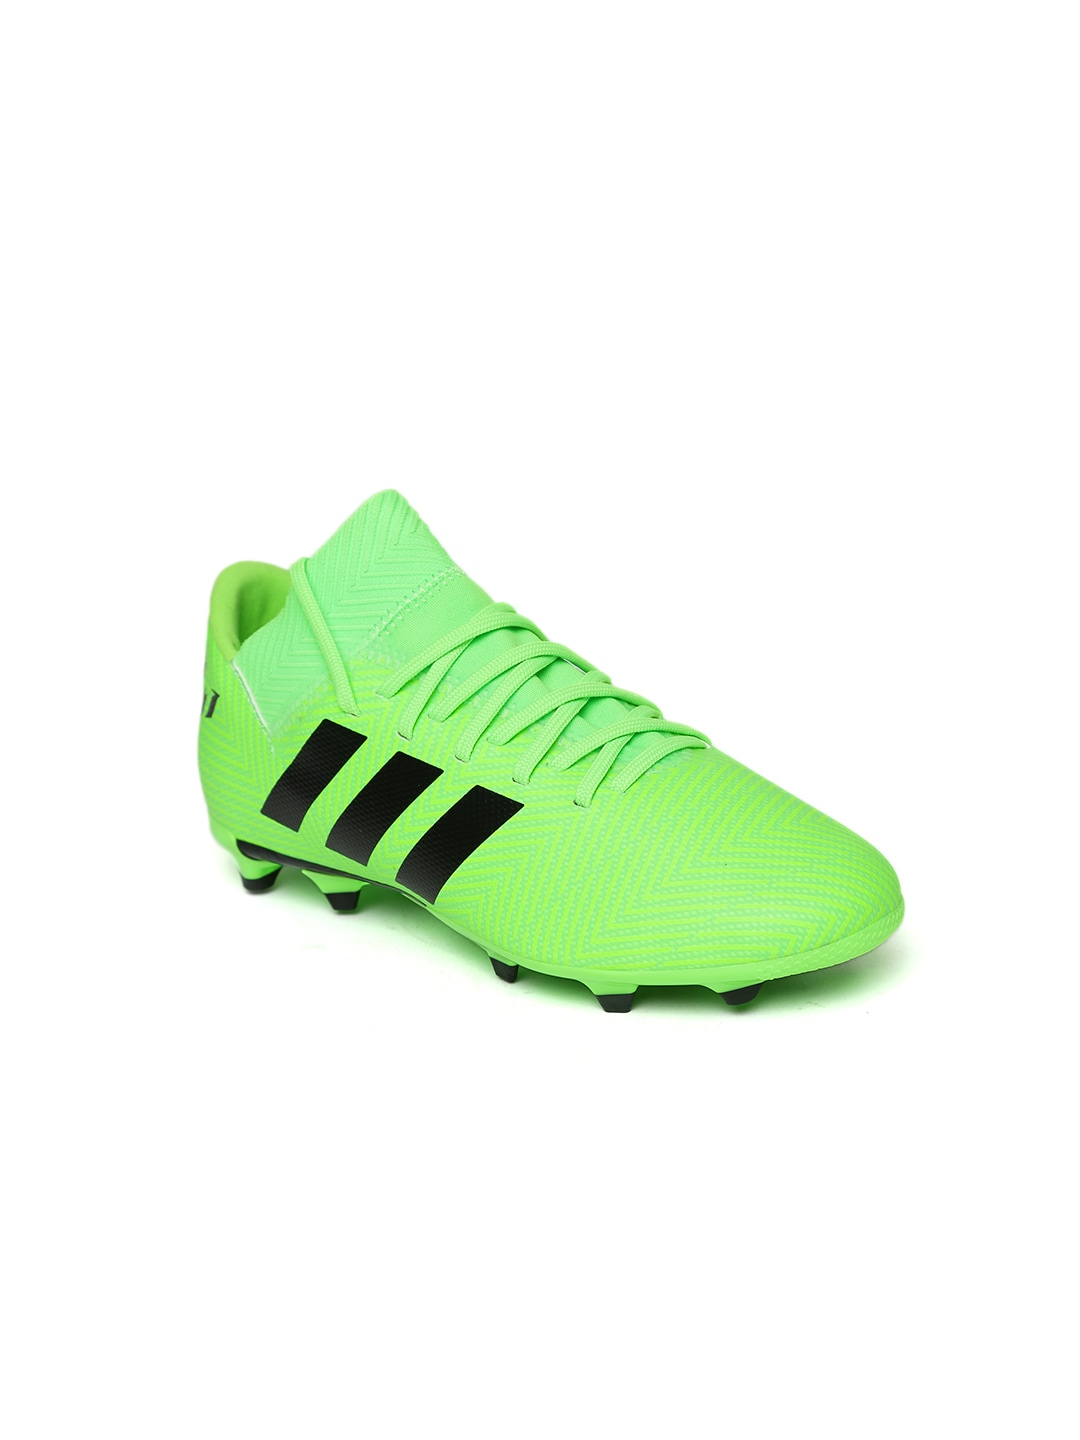 3485c493d499 Adidas Football Shoes - Buy Adidas Football Shoes for Men Online in India